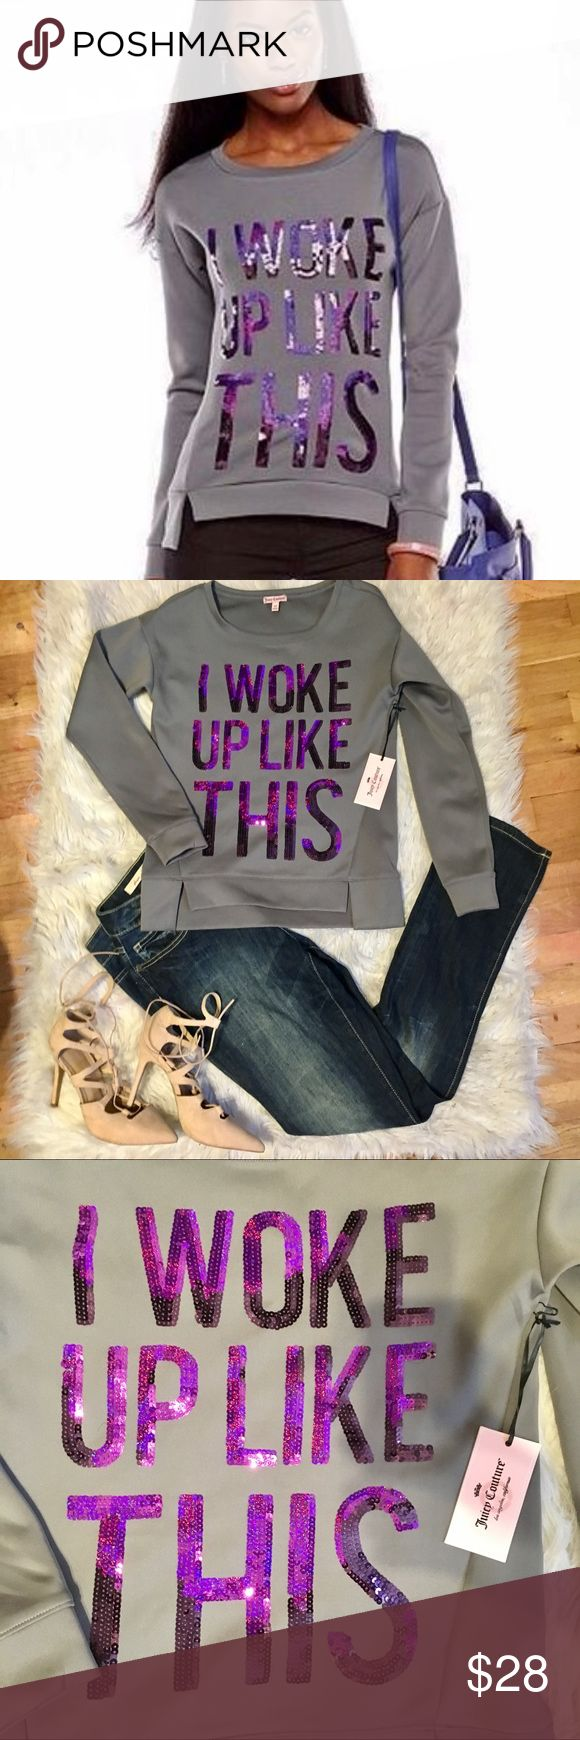 Juicy couture sequence I woke up like this top Juicy couture purple sequence I woke up like this pullover long sleeve top. 95% polyester 5% spandex. Size xs. Bundle and Ave 15% Juicy Couture Tops Crop Tops